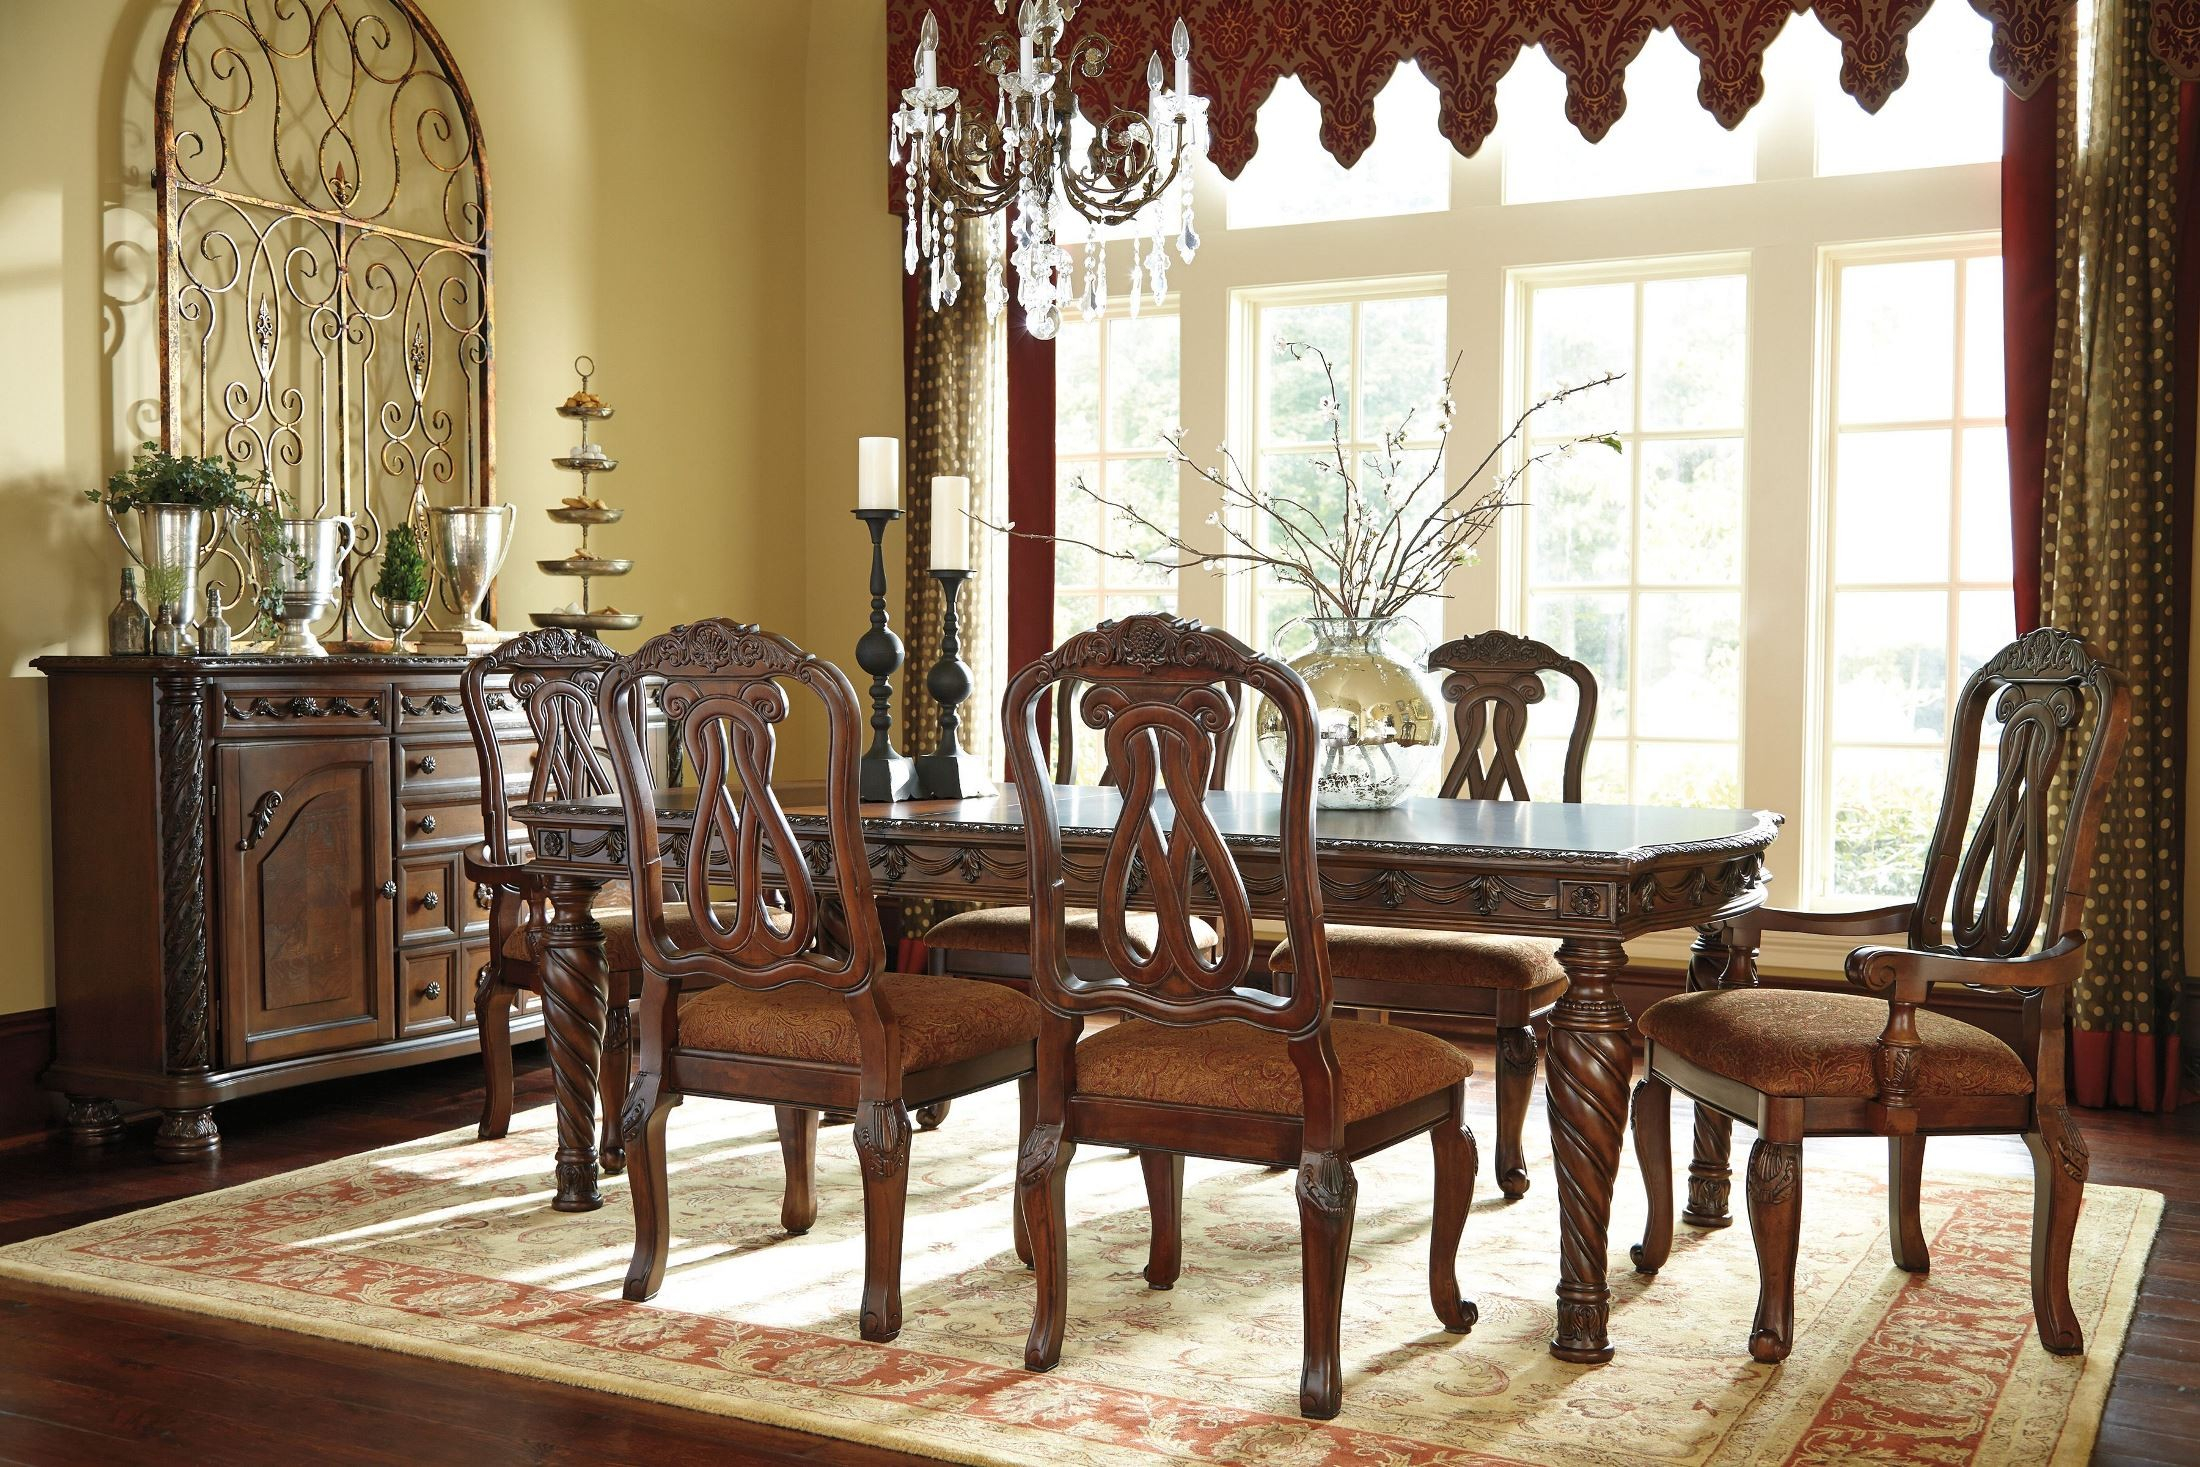 North Shore Rectangular Extendable Dining Room Set From Ashley D553 throughout 13 Awesome Ways How to Build Living Room Set Sale